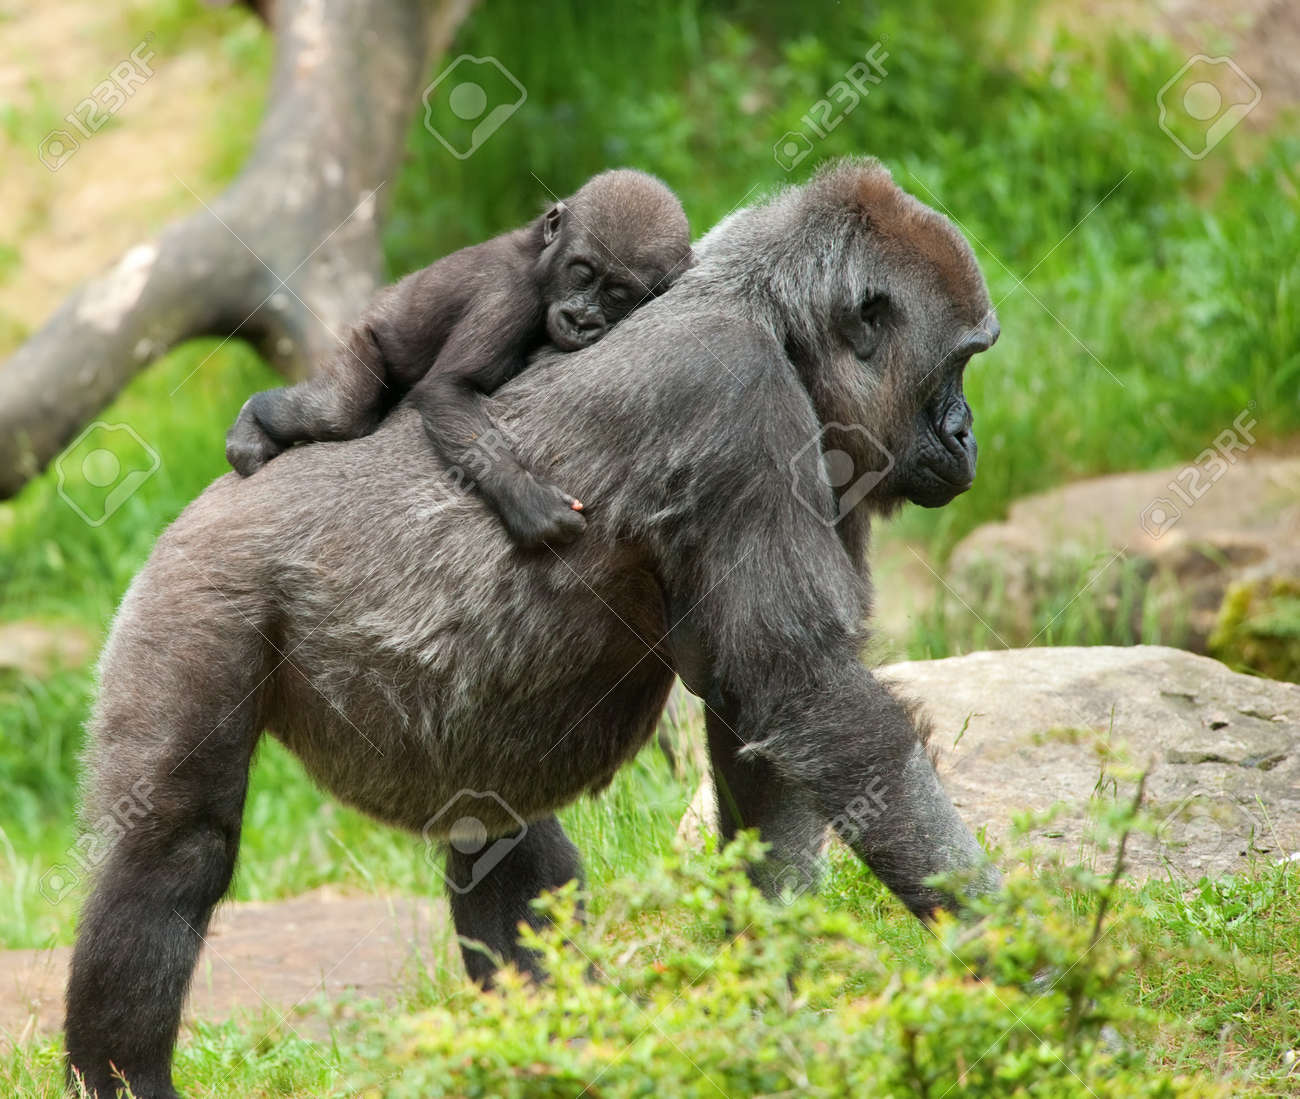 close-up of a cute baby gorilla and mother Standard-Bild - 7149935